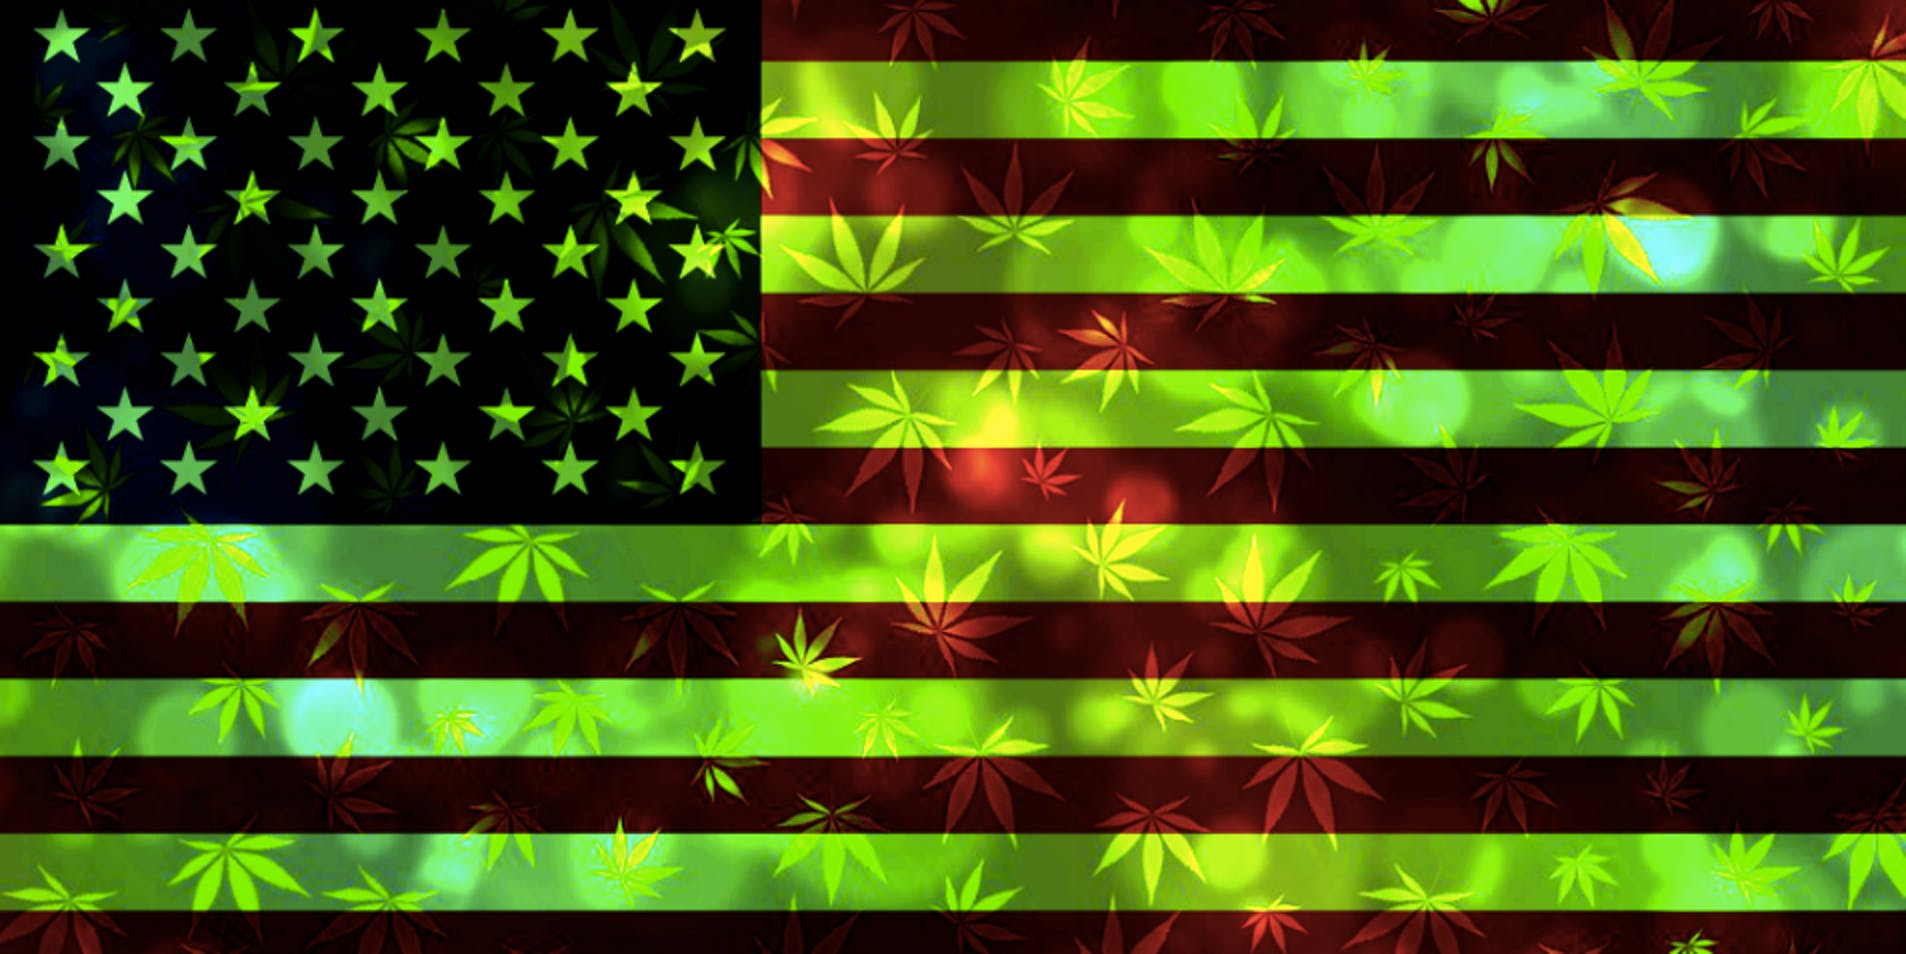 Voters made new decisions on marijuana policies.